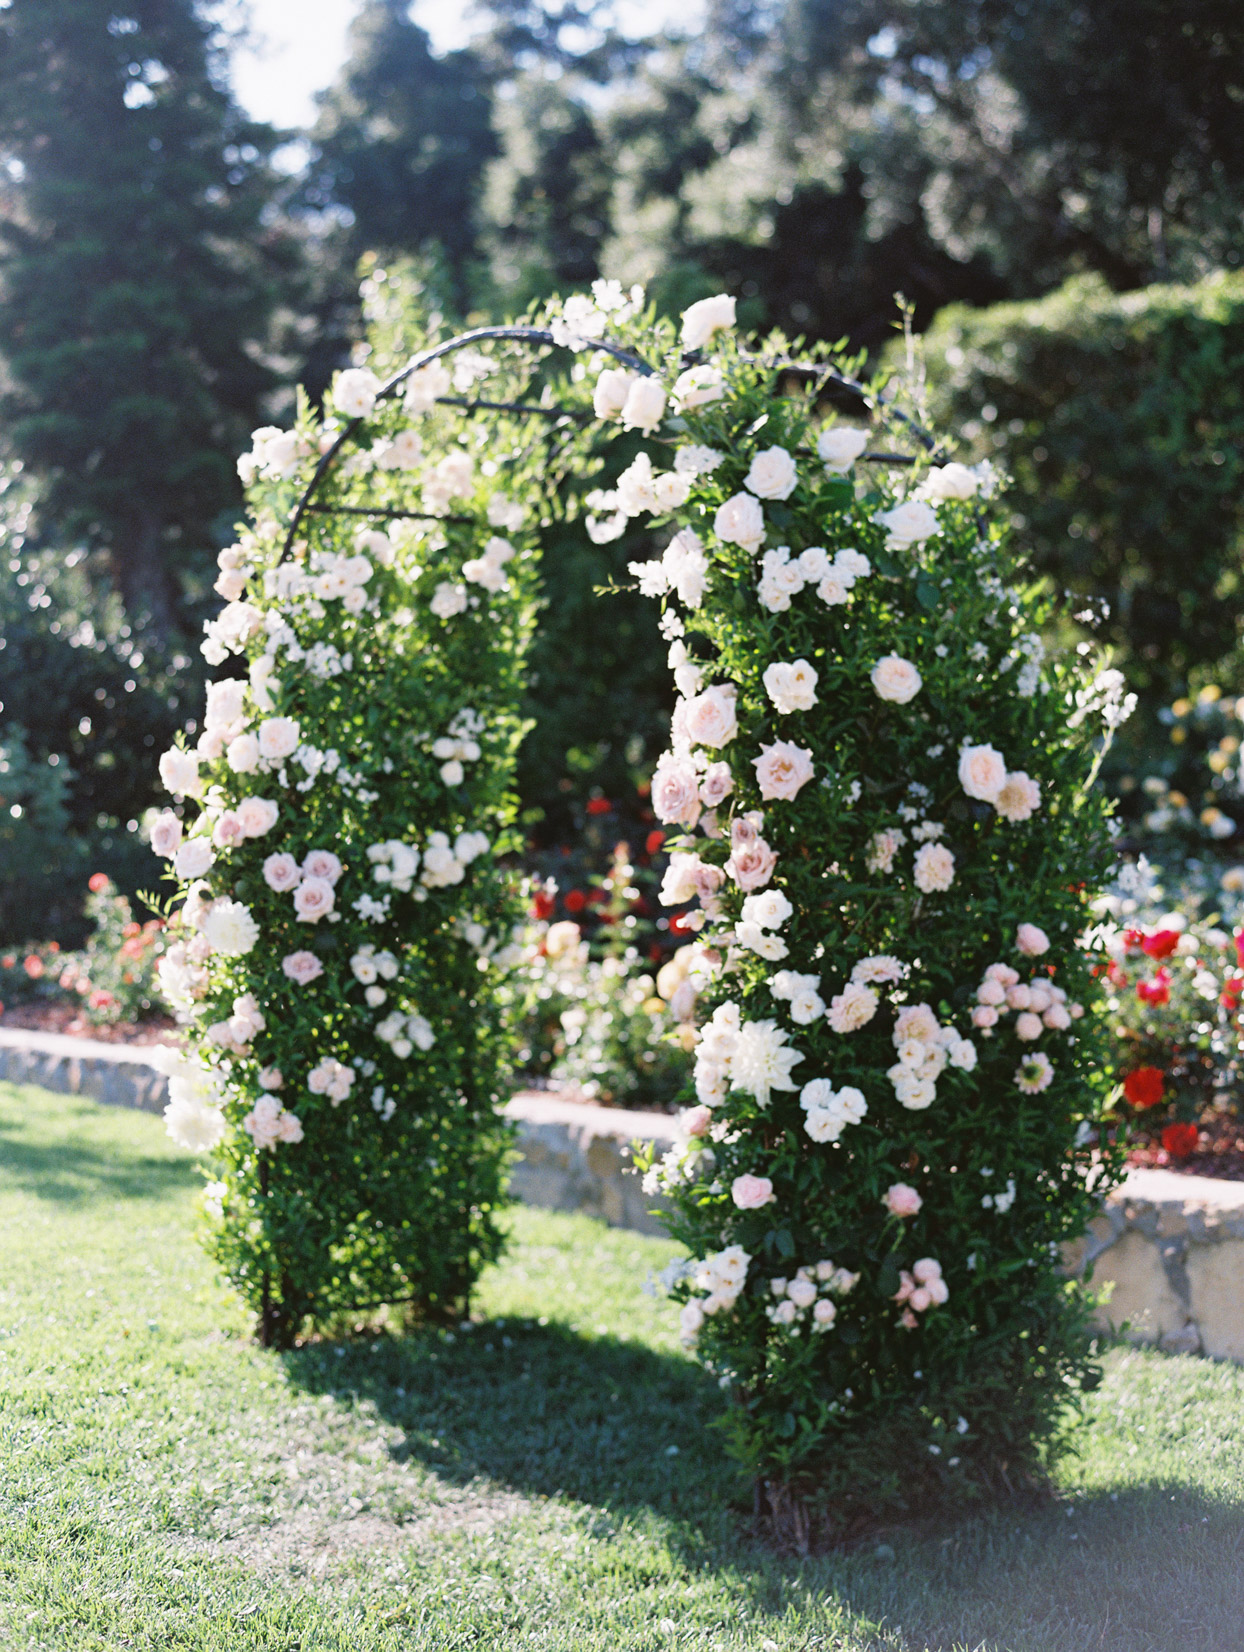 greenery and floral wedding ceremony arch in garden